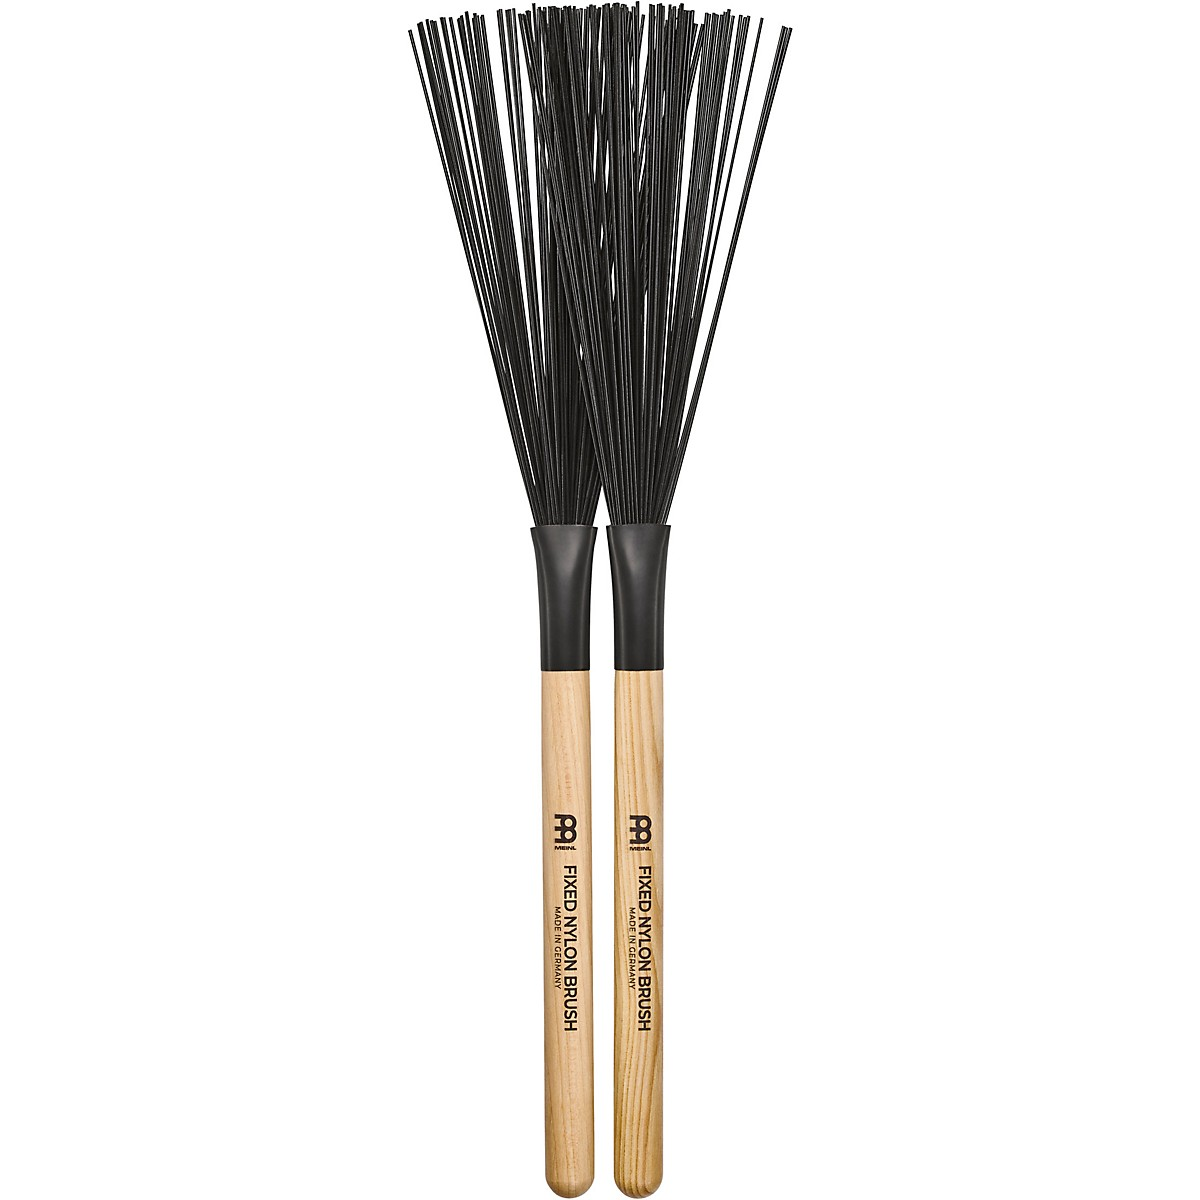 Meinl Stick & Brush Fixed Nylon Brushes